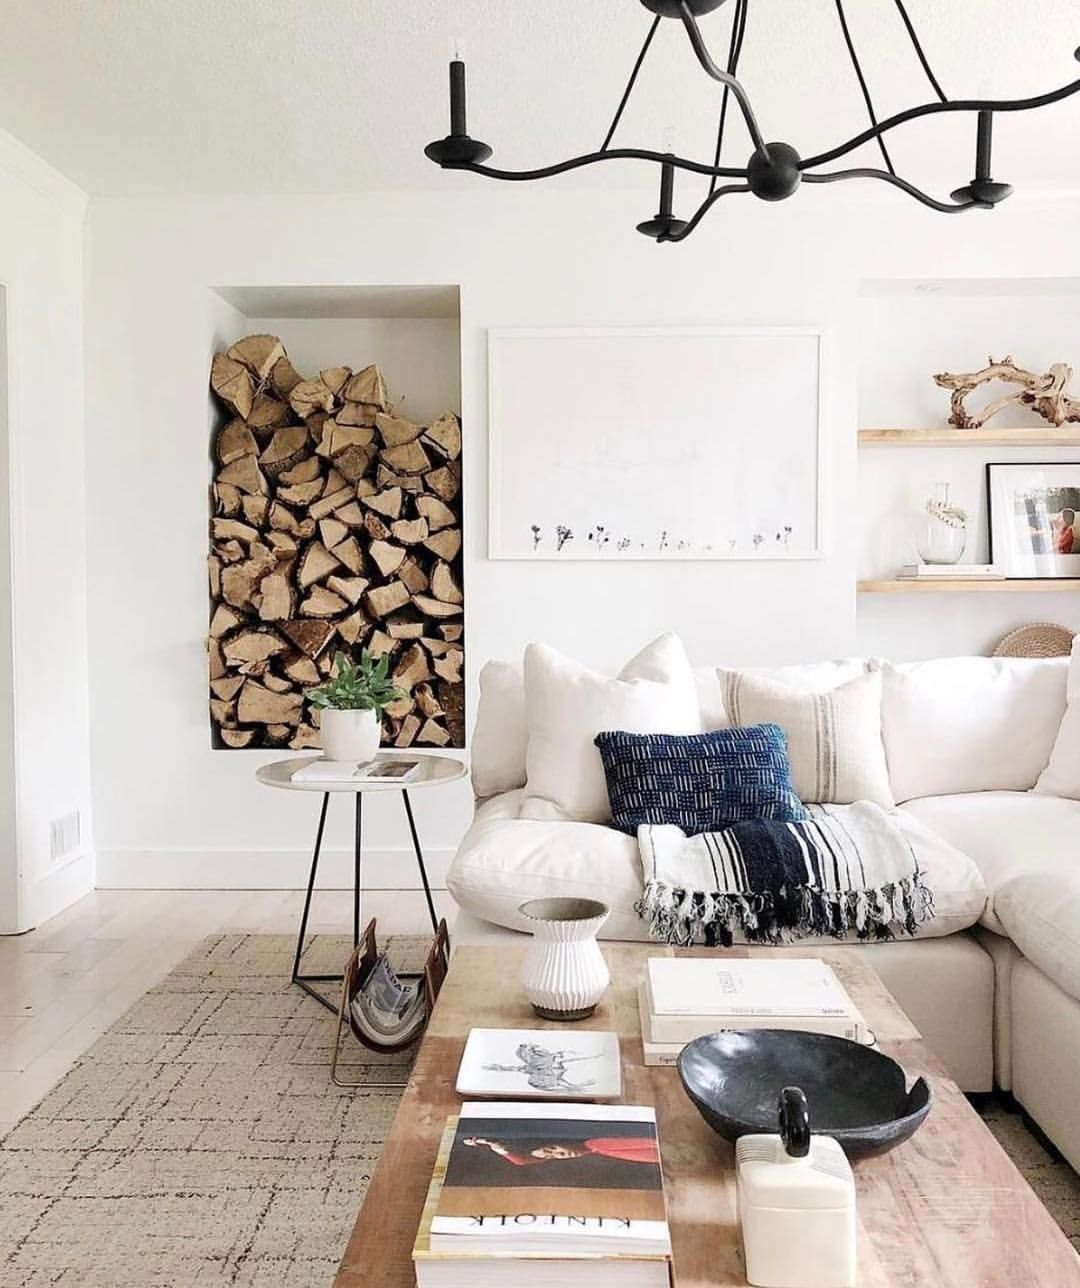 Housesevendesign S Living Space Is The Definition Of Weekendgoals Who S With Us Living Room Inspiration Family Room Inspiration